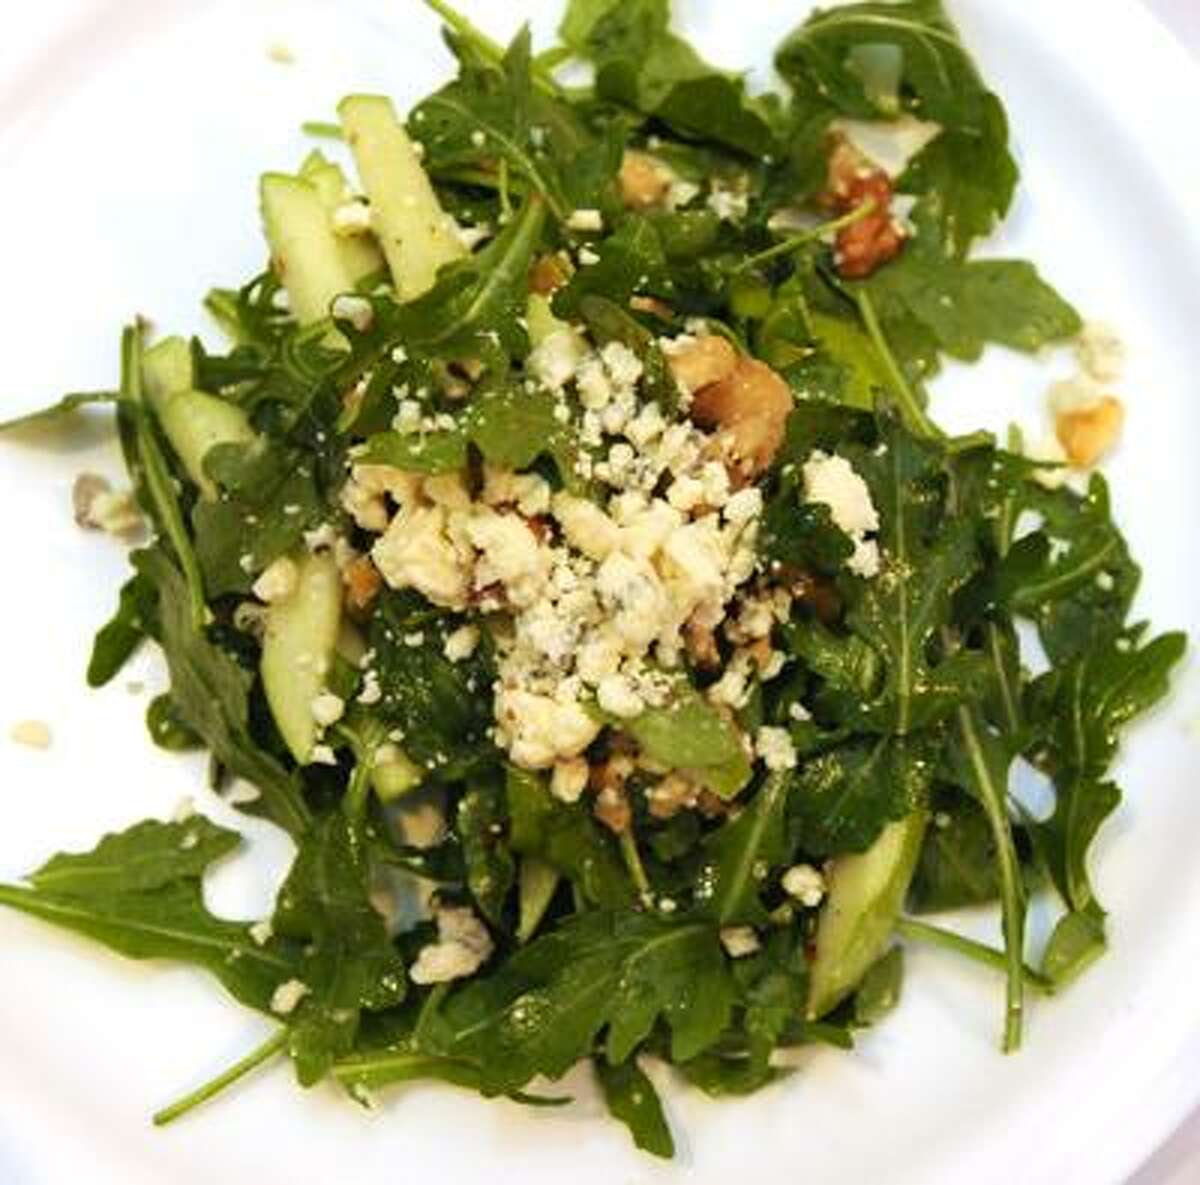 Photography by Peter Hvizdak ph2190 #4055New Haven, Connecticut - October 25, 2010: Arugula Apple Walnut Salad at Caffe Bravo of New Haven. Ingredients: Baby arugula, 1 tablespoon walnuts roasted 6-minutes at 400F depending on oven, 1 tablespoon gorgonzola cheese, 1/4 of a granny smith apple, 1 tablespoon of extra virgin olive oil, 1 tablespoon lemon juice, salt and pepper to taste.